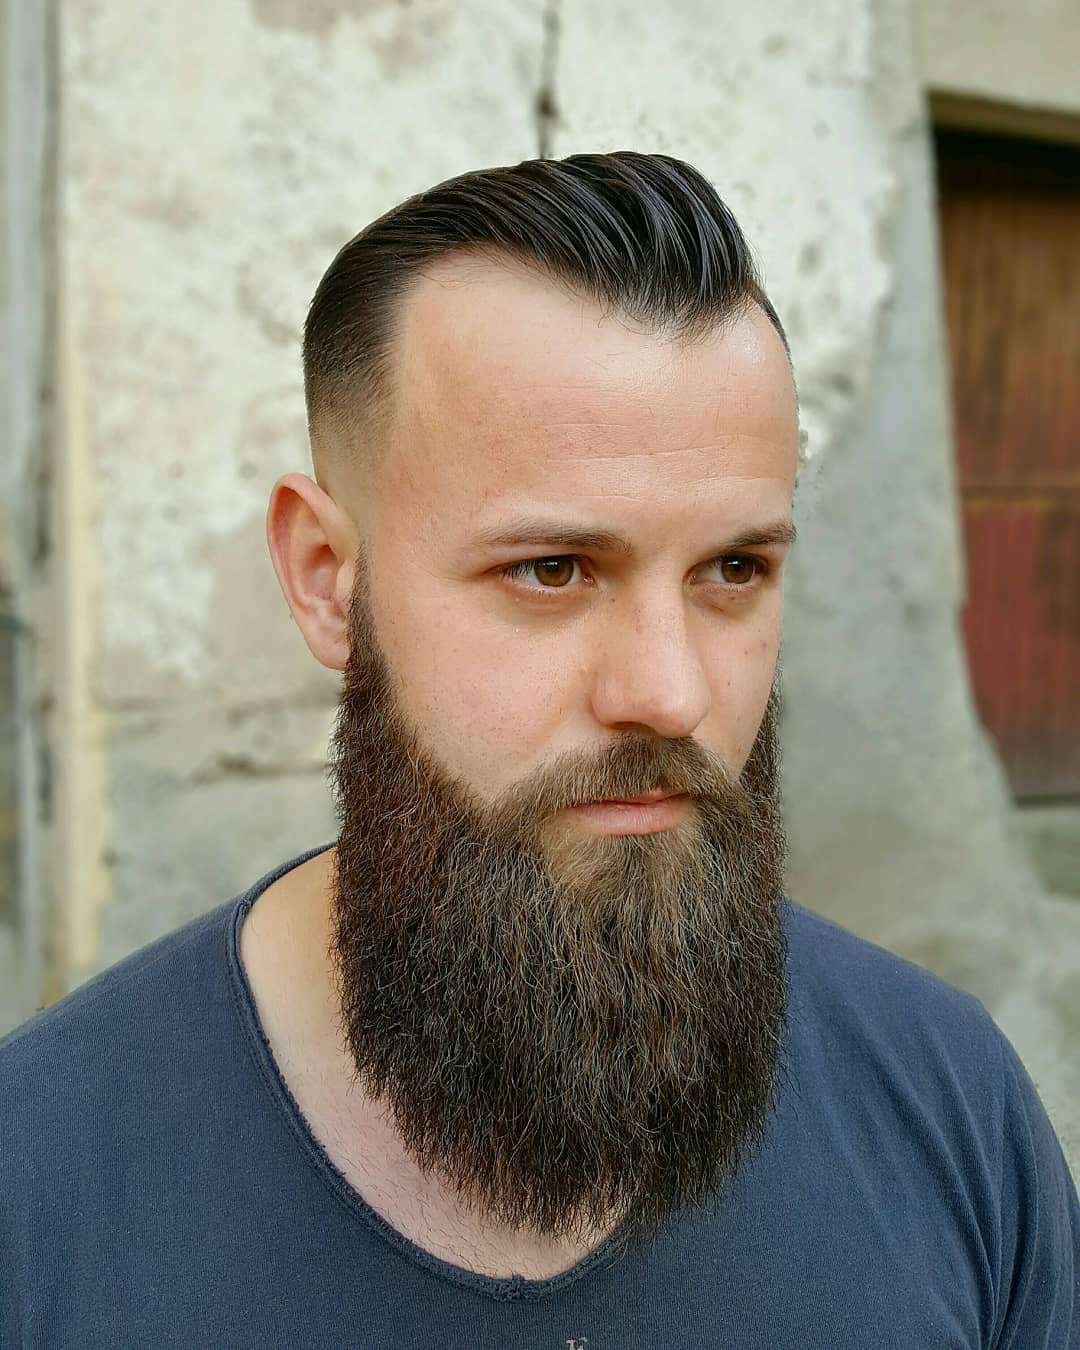 Subtle Pompadour + Heavy Beard